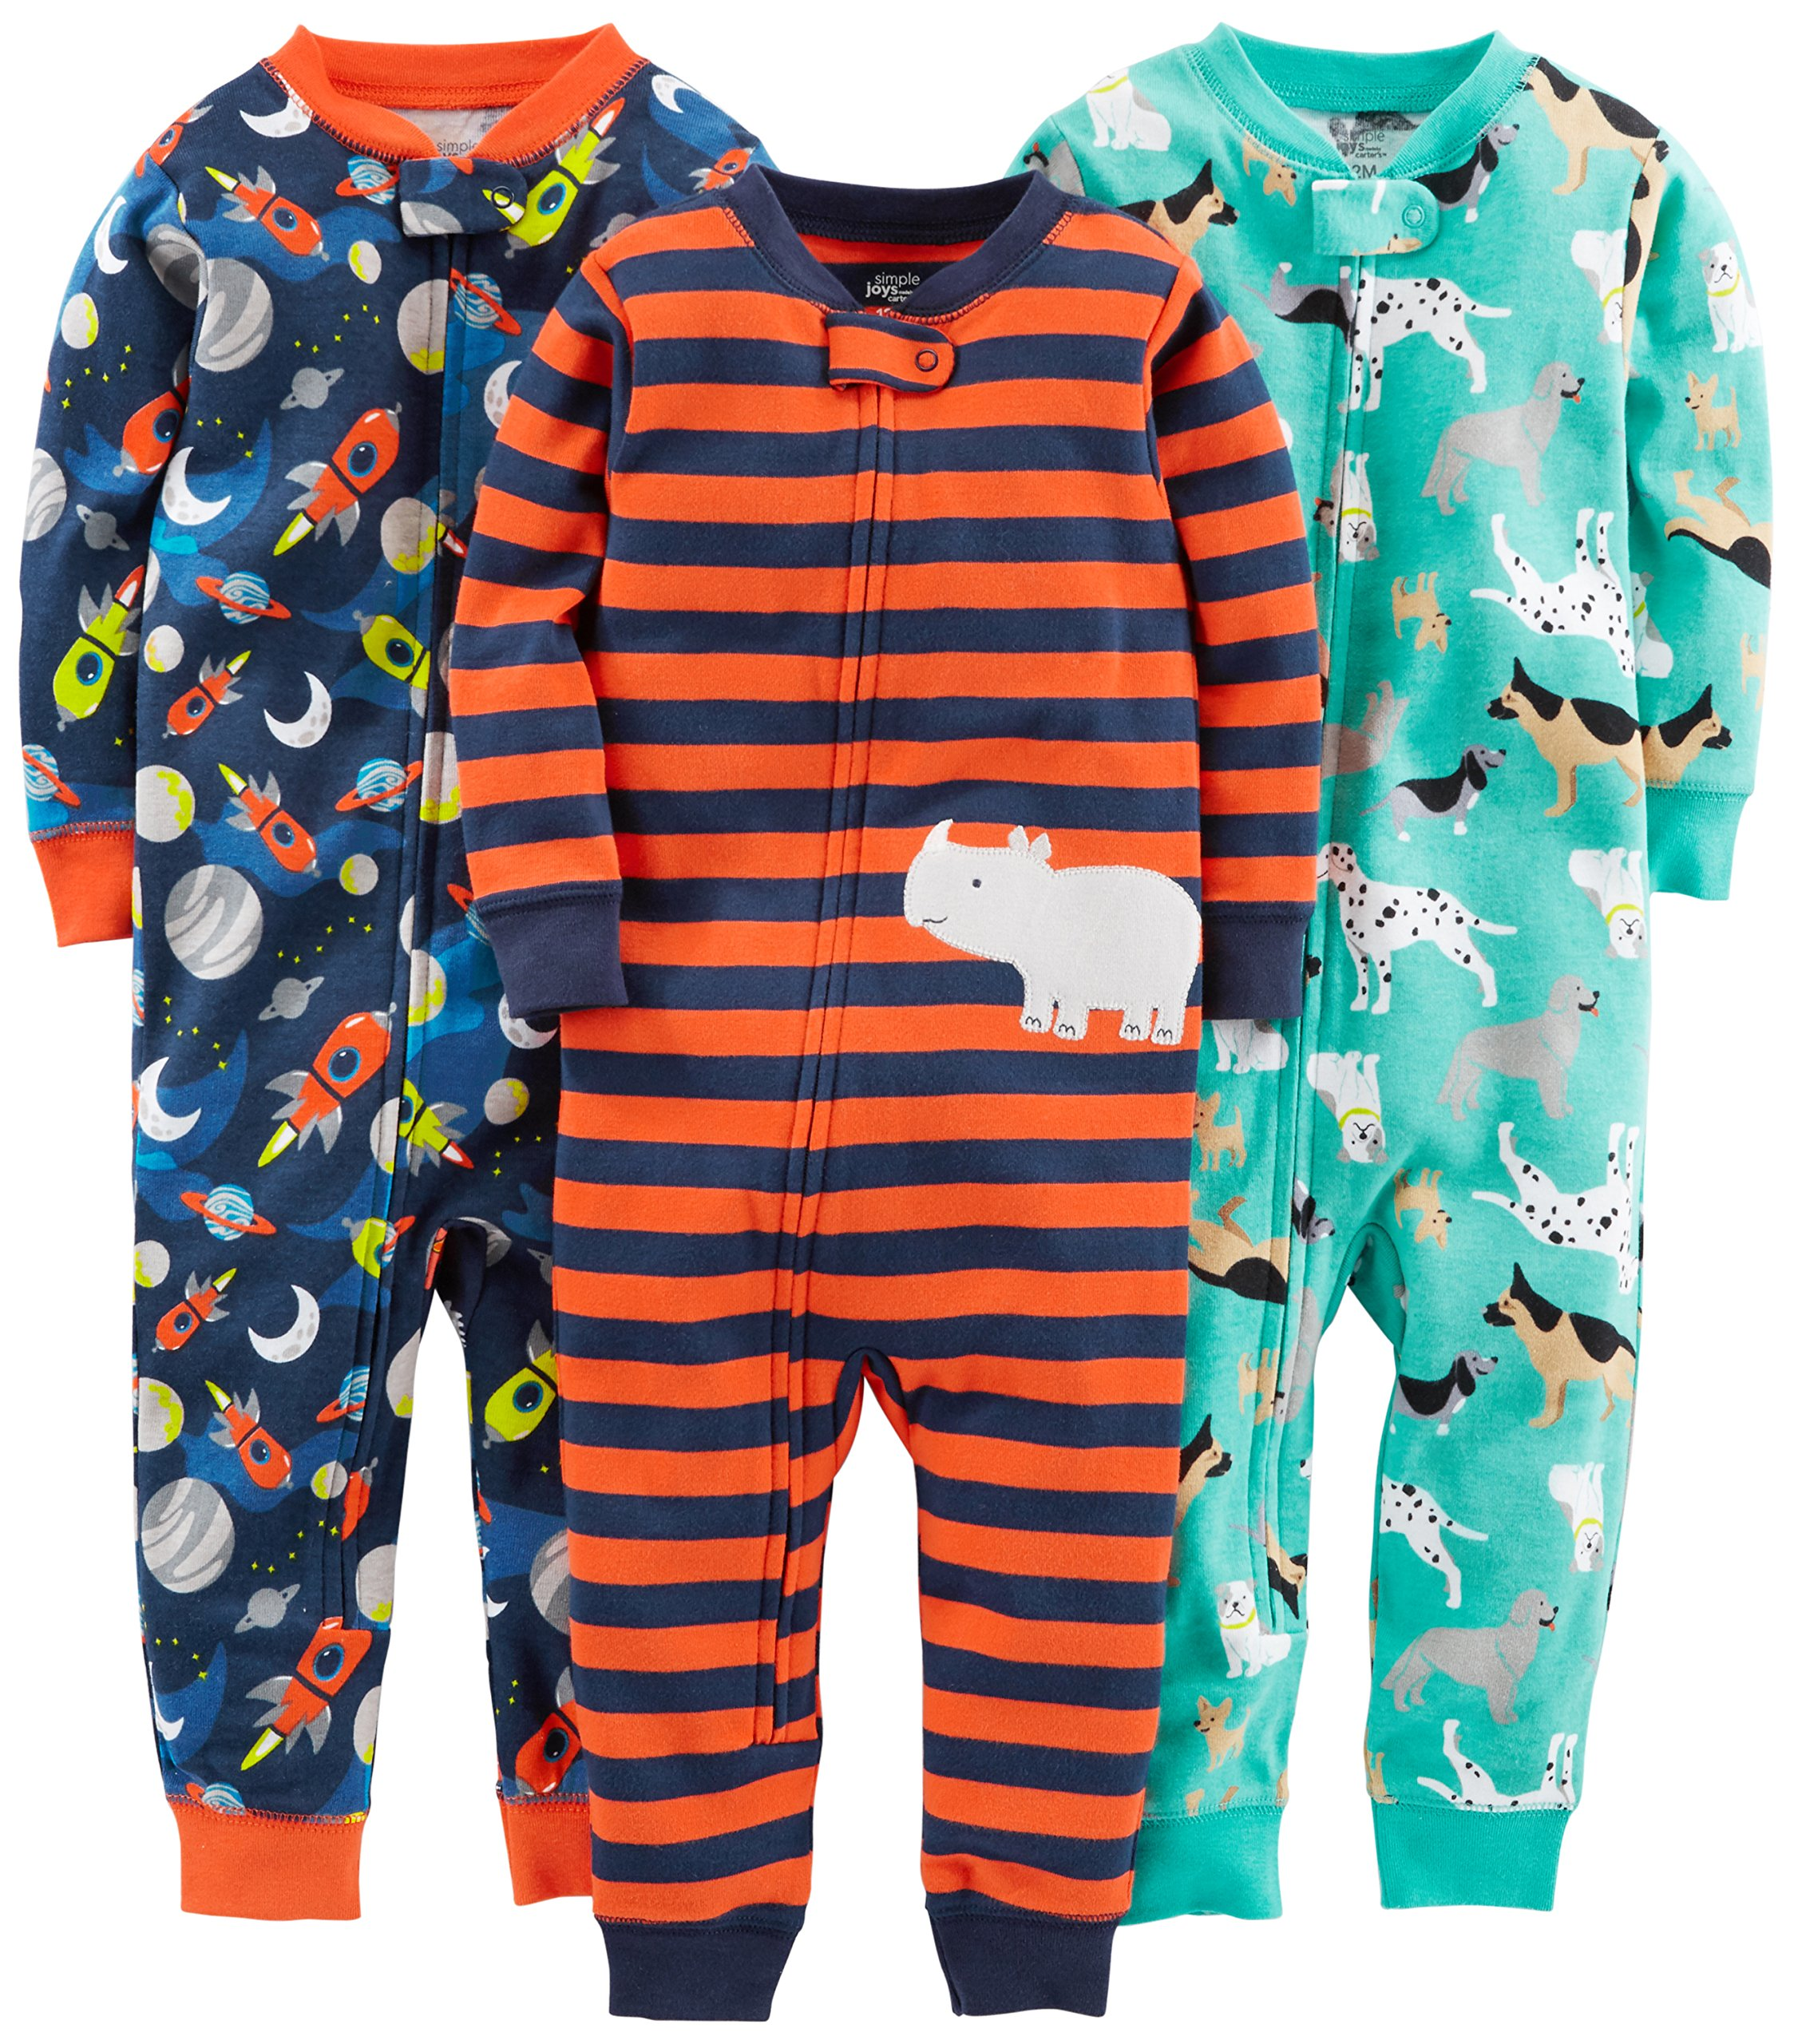 Simple Joys by Carter's Baby Boys' Toddler 3-Pack Snug Fit Footless Cotton Pajamas, Dogs/Space/Rhino, 3T by Simple Joys by Carter's